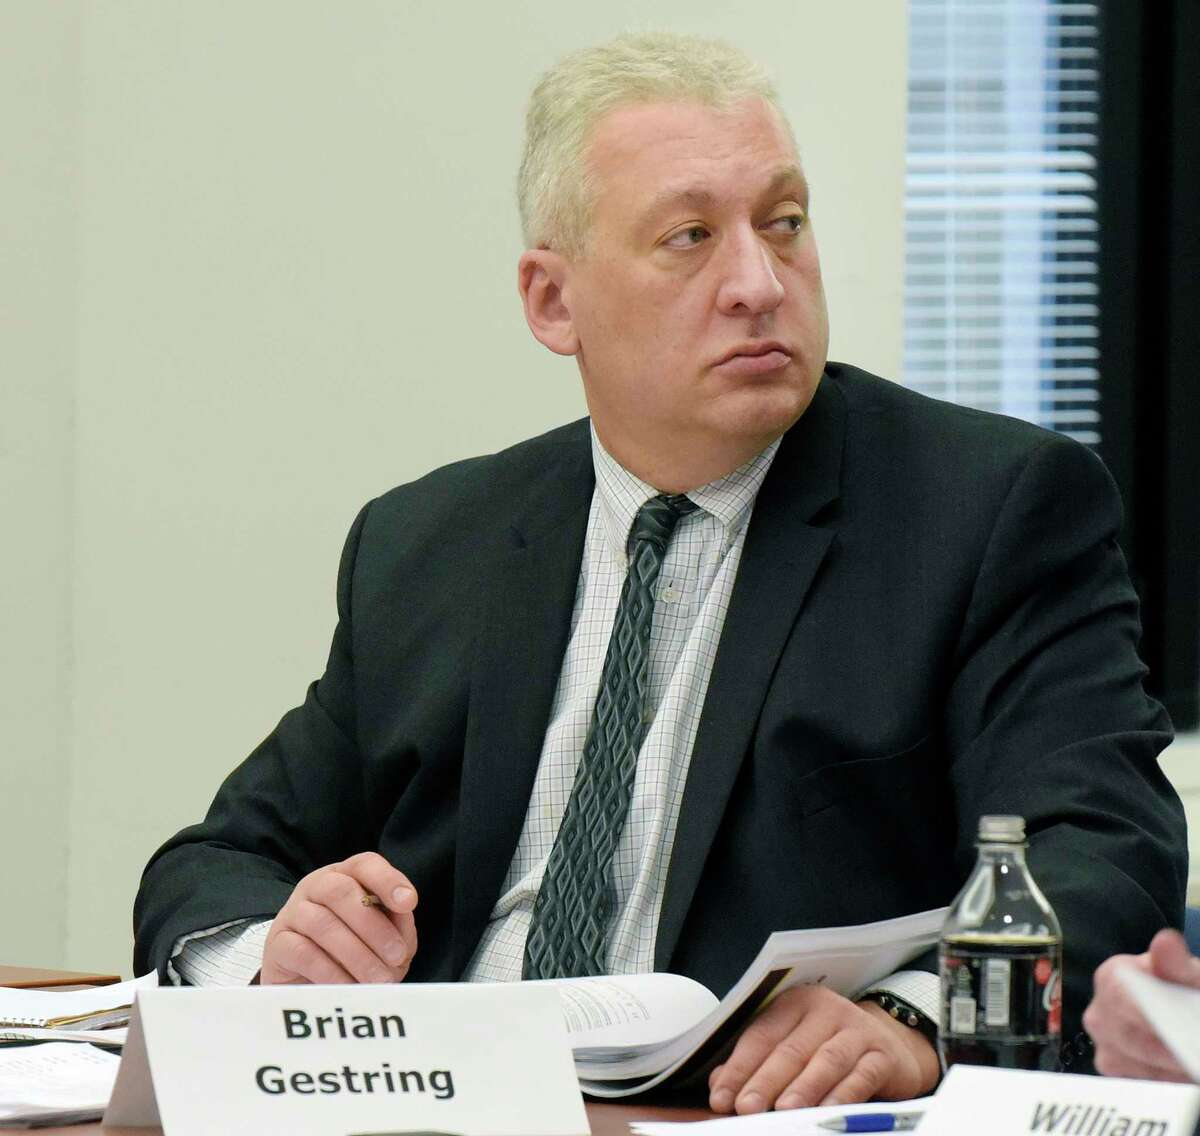 Brian Gestring, director of Forensic Science Office for the Department of Criminal Justice Services, takes part in a commission meeting on Wednesday, March 21, 2018, in Albany, N.Y. Gestring was fired Thursday, four days after the Times Union reported that he was never punished by the agency after an inspector general's investigation found that he had threatened female employees with physical violence and engaged in years of sexual harassment. (Paul Buckowski/The Albany Times Union via AP)